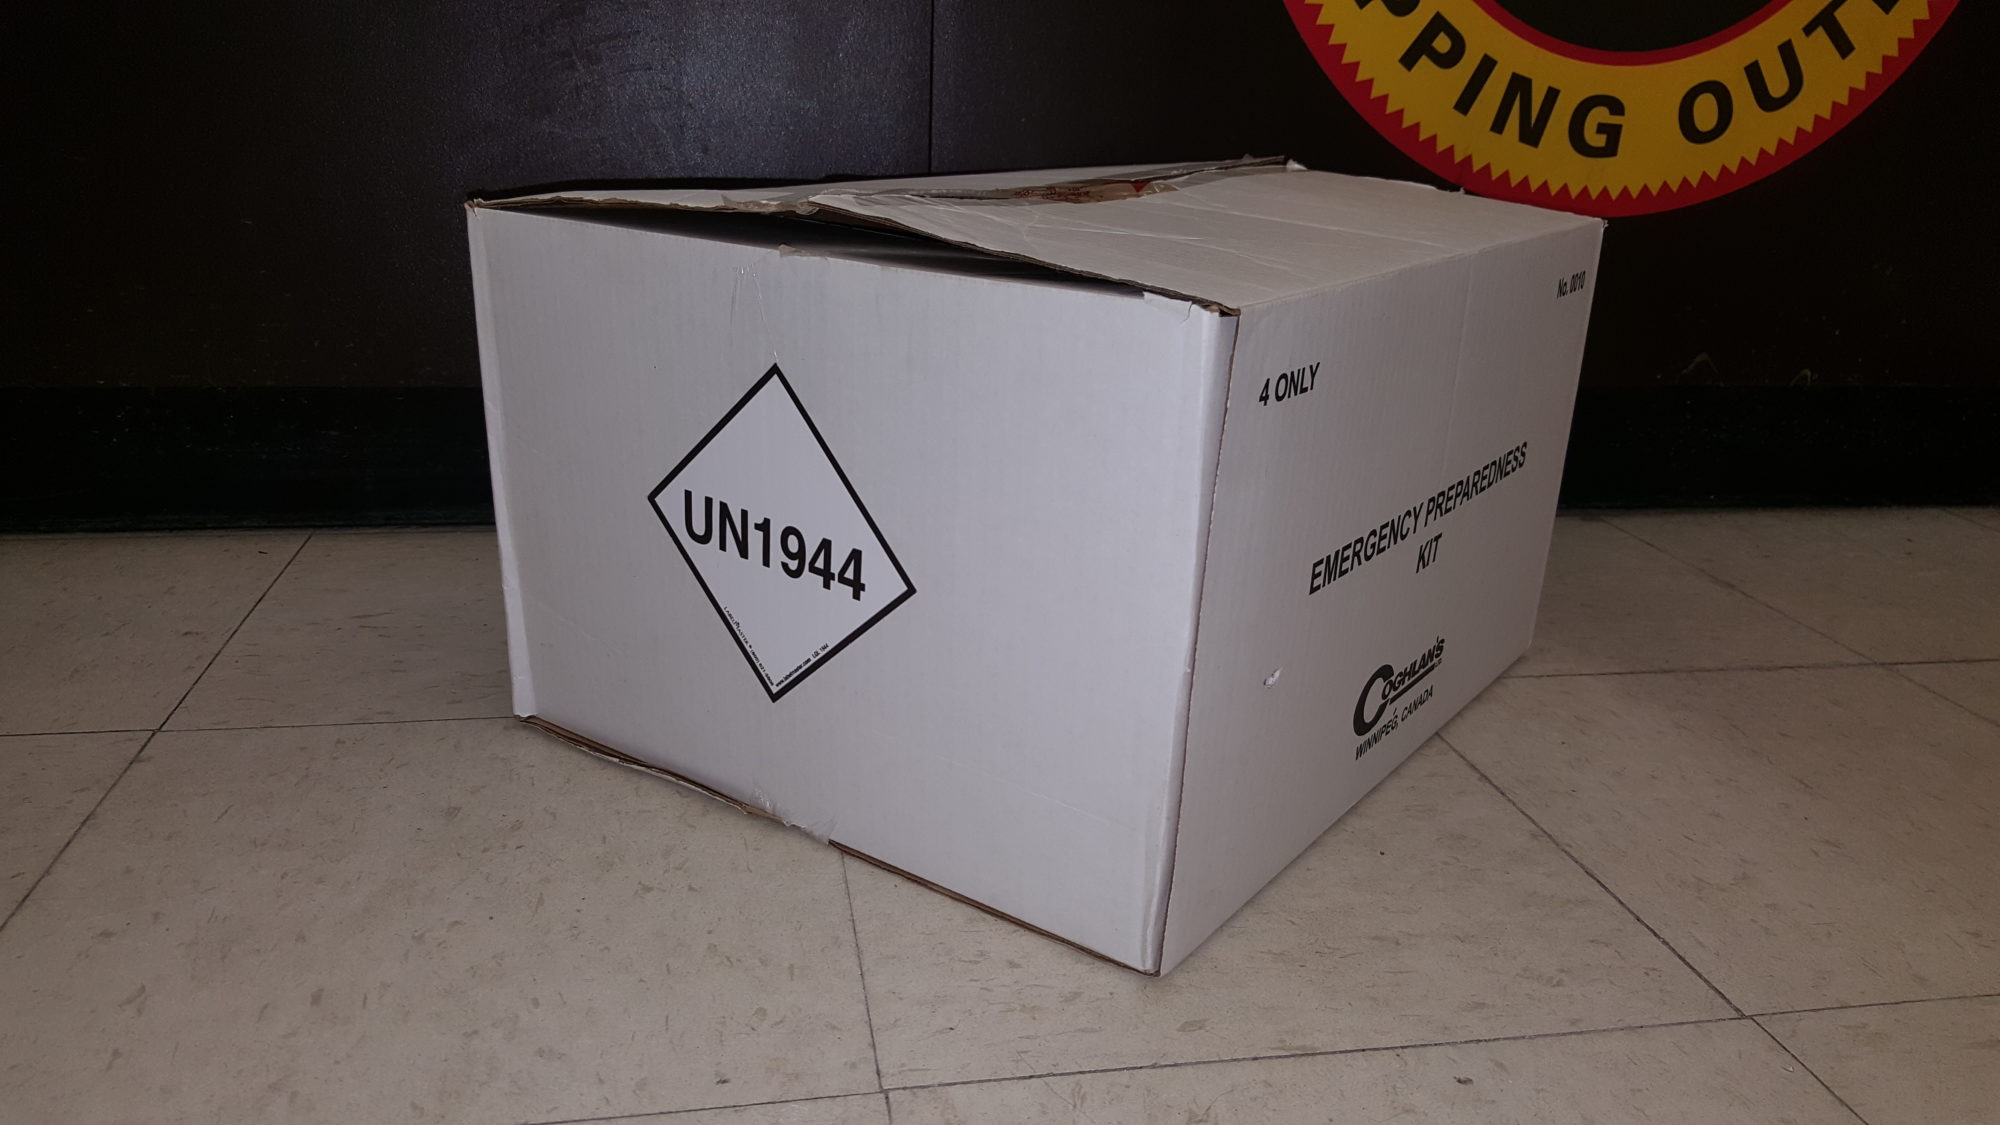 The General Requirements for Packagings and Packages in the